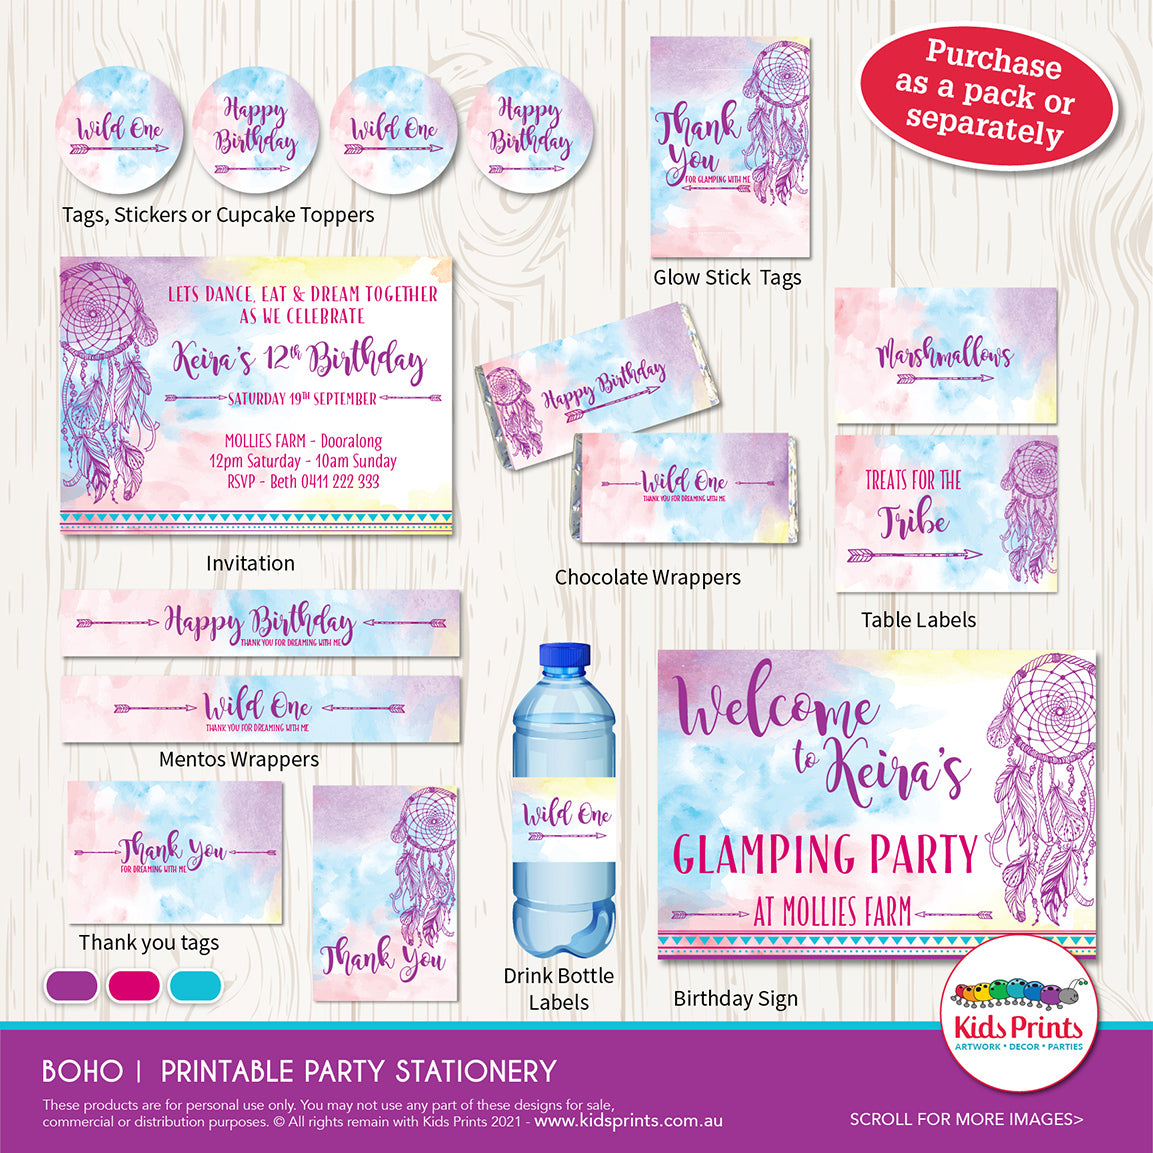 Boho Party | Party Printables - Kids Prints Online